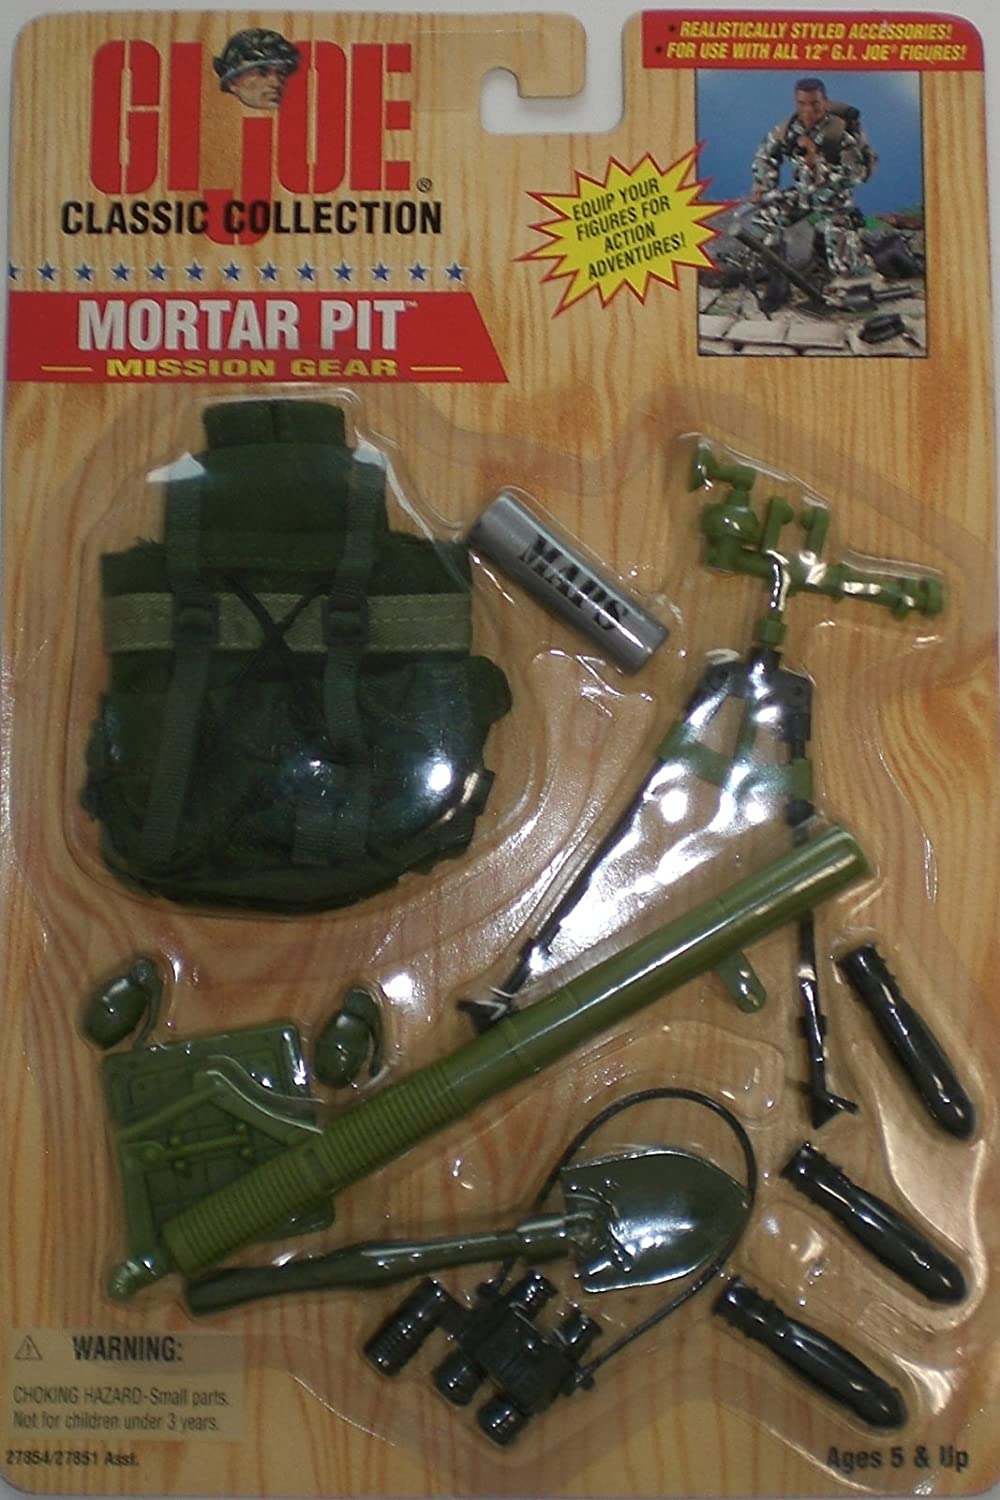 1 6 Scale 1996 GI Joe Mission Gear Mortar Pit for 12 inches Action Figure